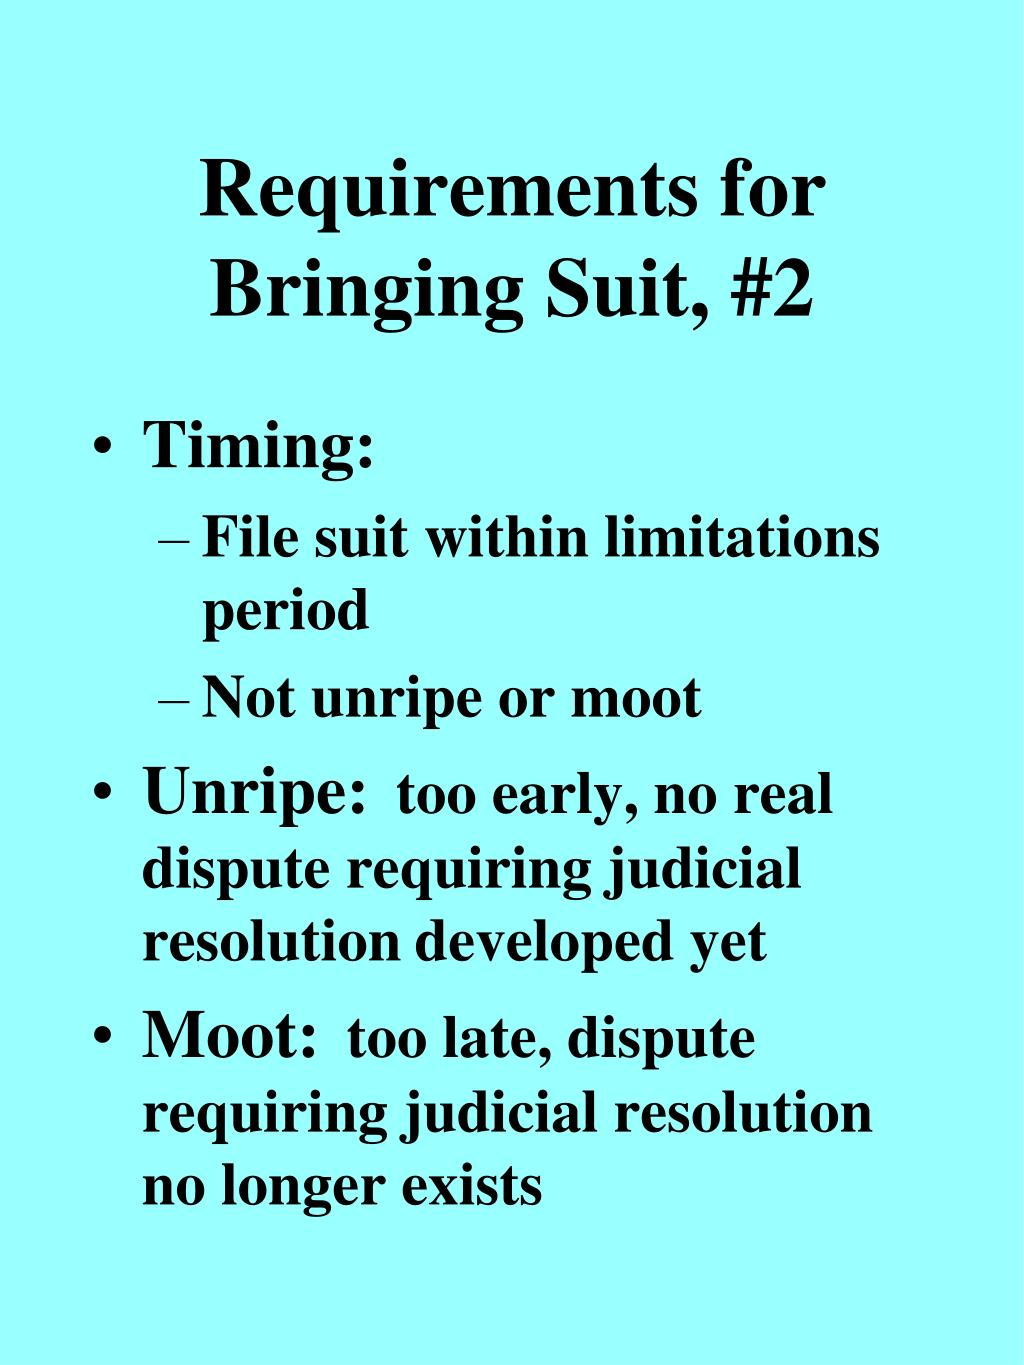 Requirements for Bringing Suit, #2